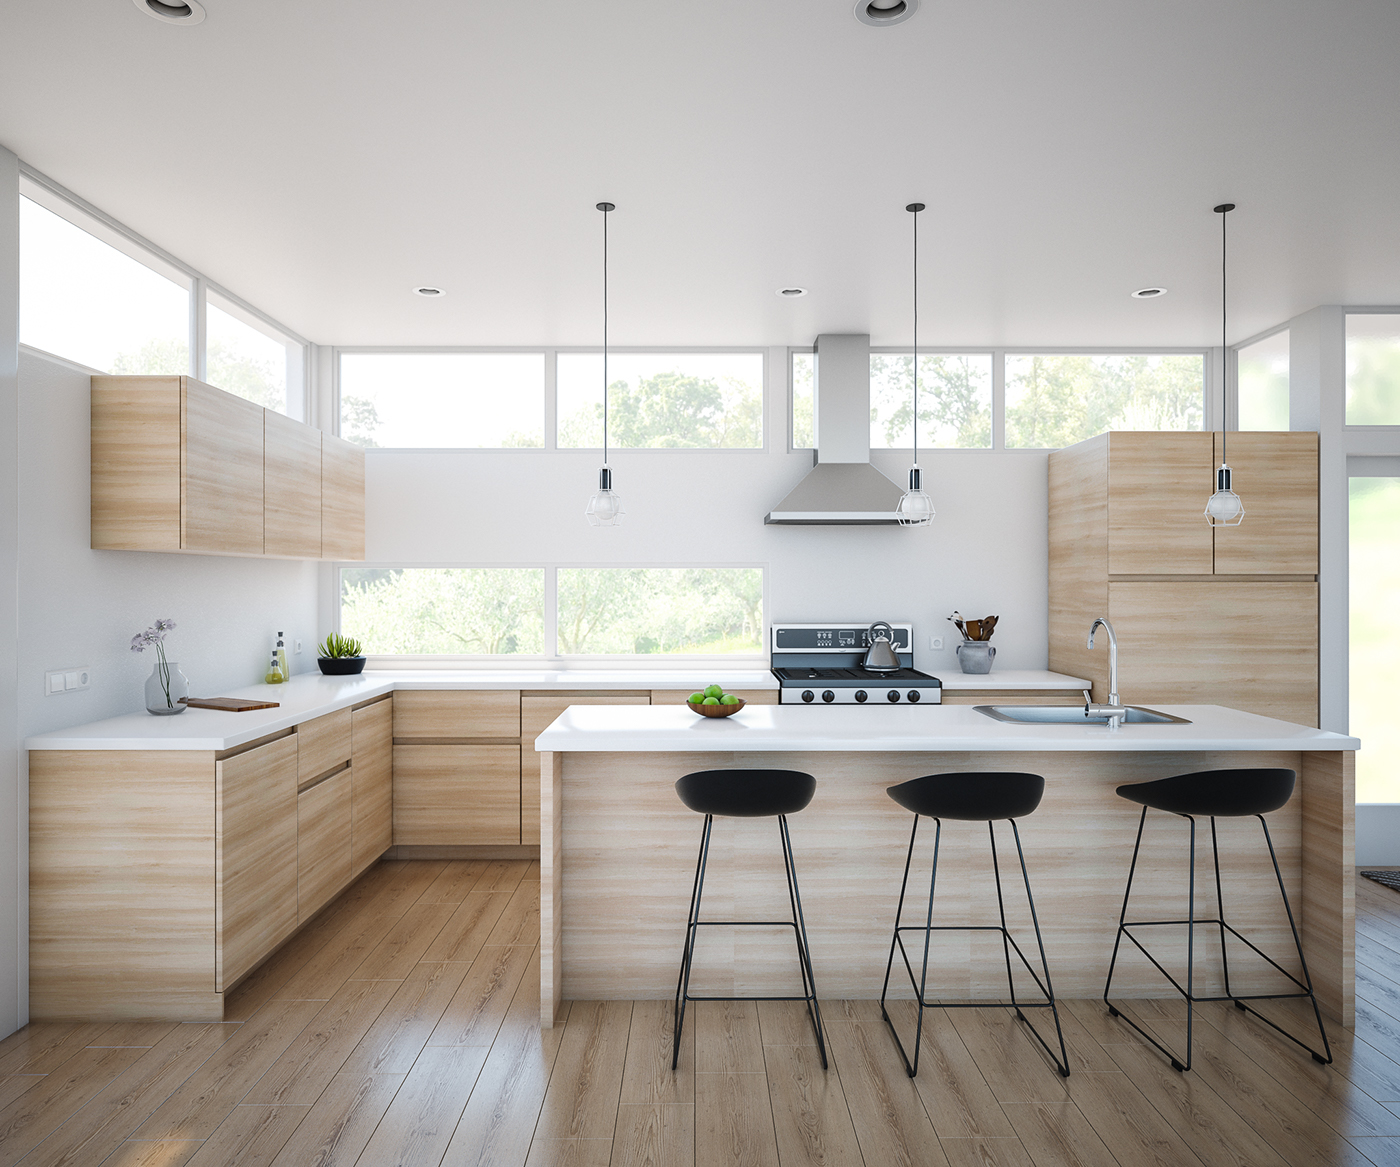 25 White And Wood Kitchen Ideas: Auckland Kitchens, New Zealand